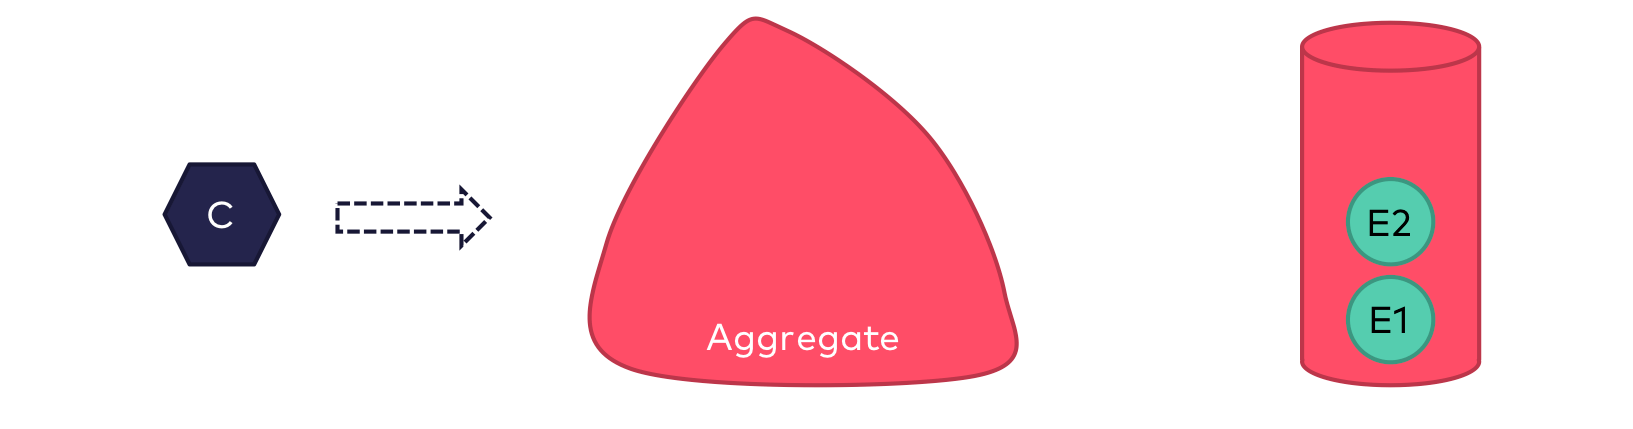 A business-related action is to be invoked on an existing aggregate. Two previous events have already been persisted for this aggregate.